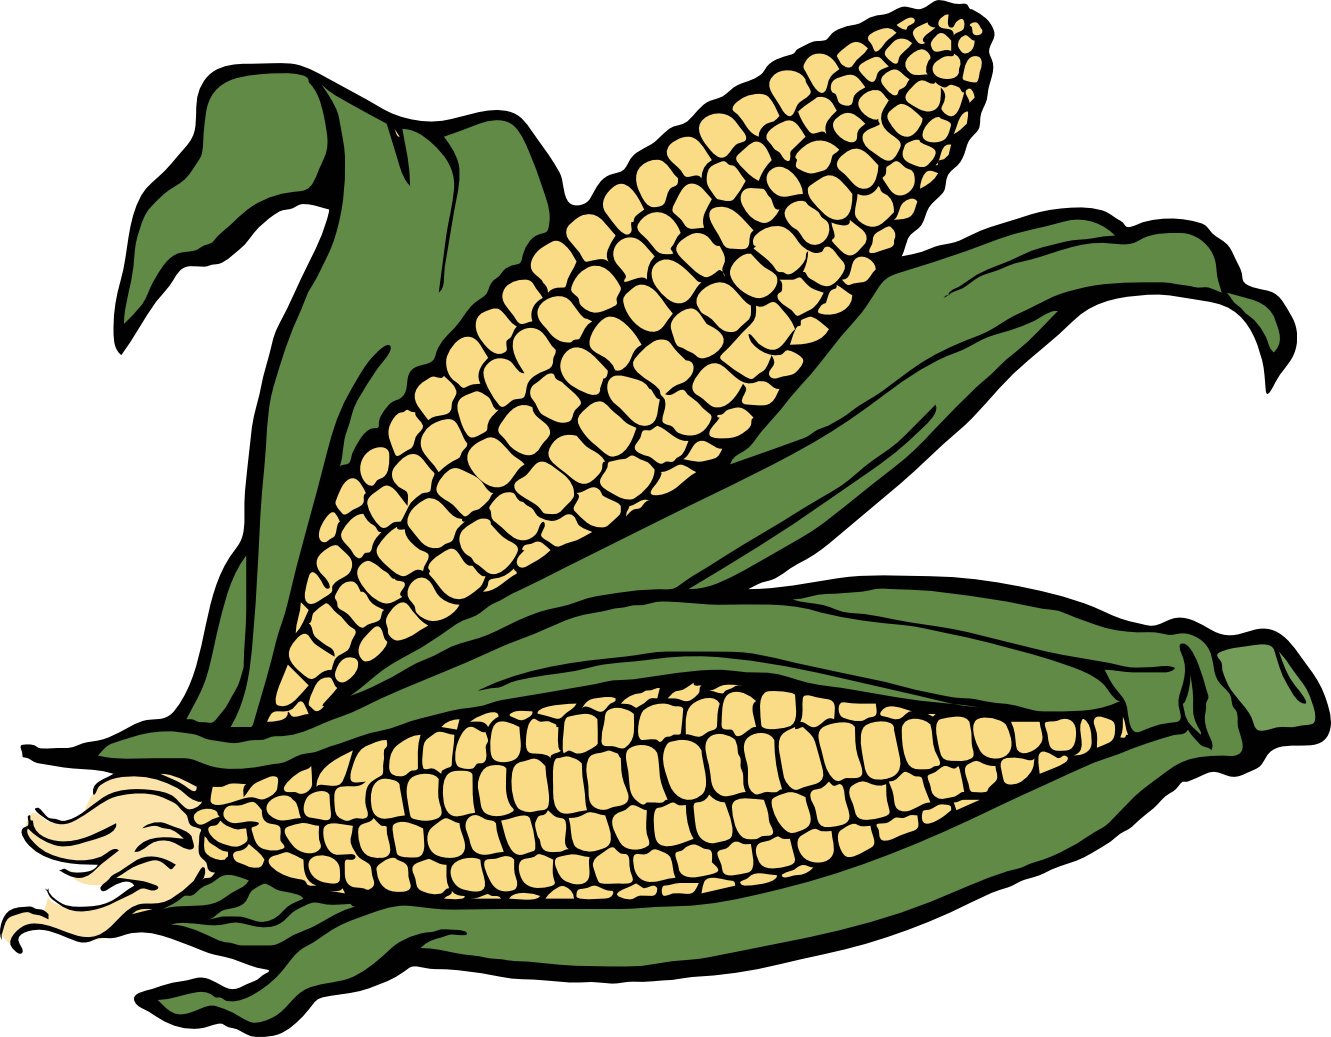 Crops clipart maize crop. Free indian corn download